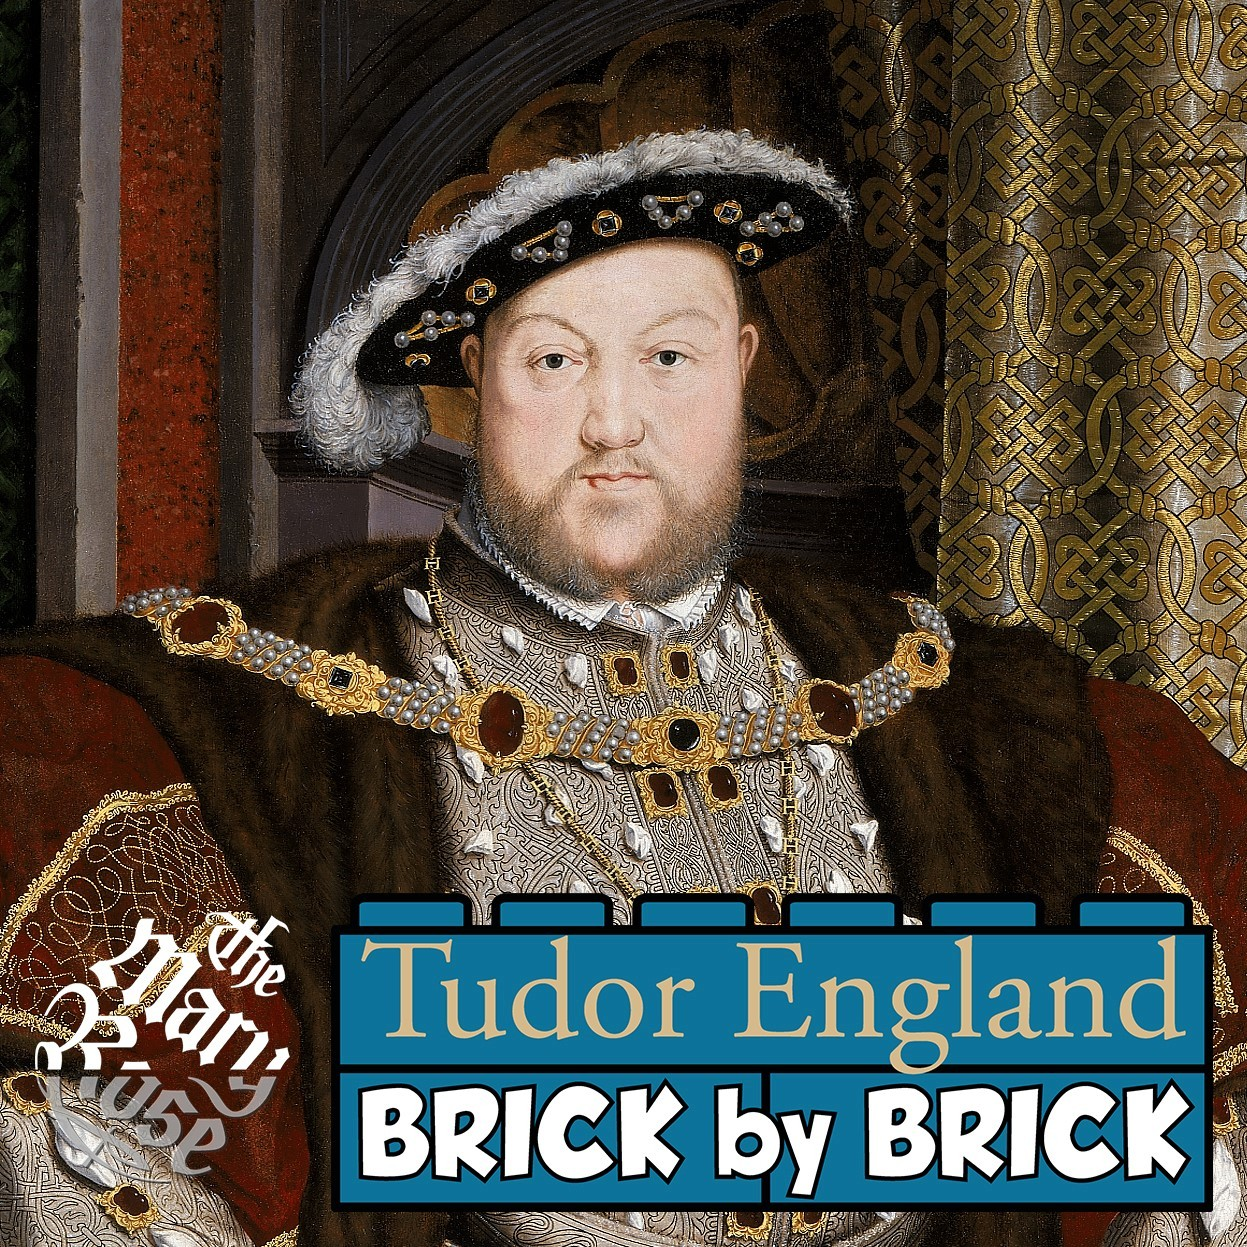 Tudor England Brick by Brick at The Mary Rose